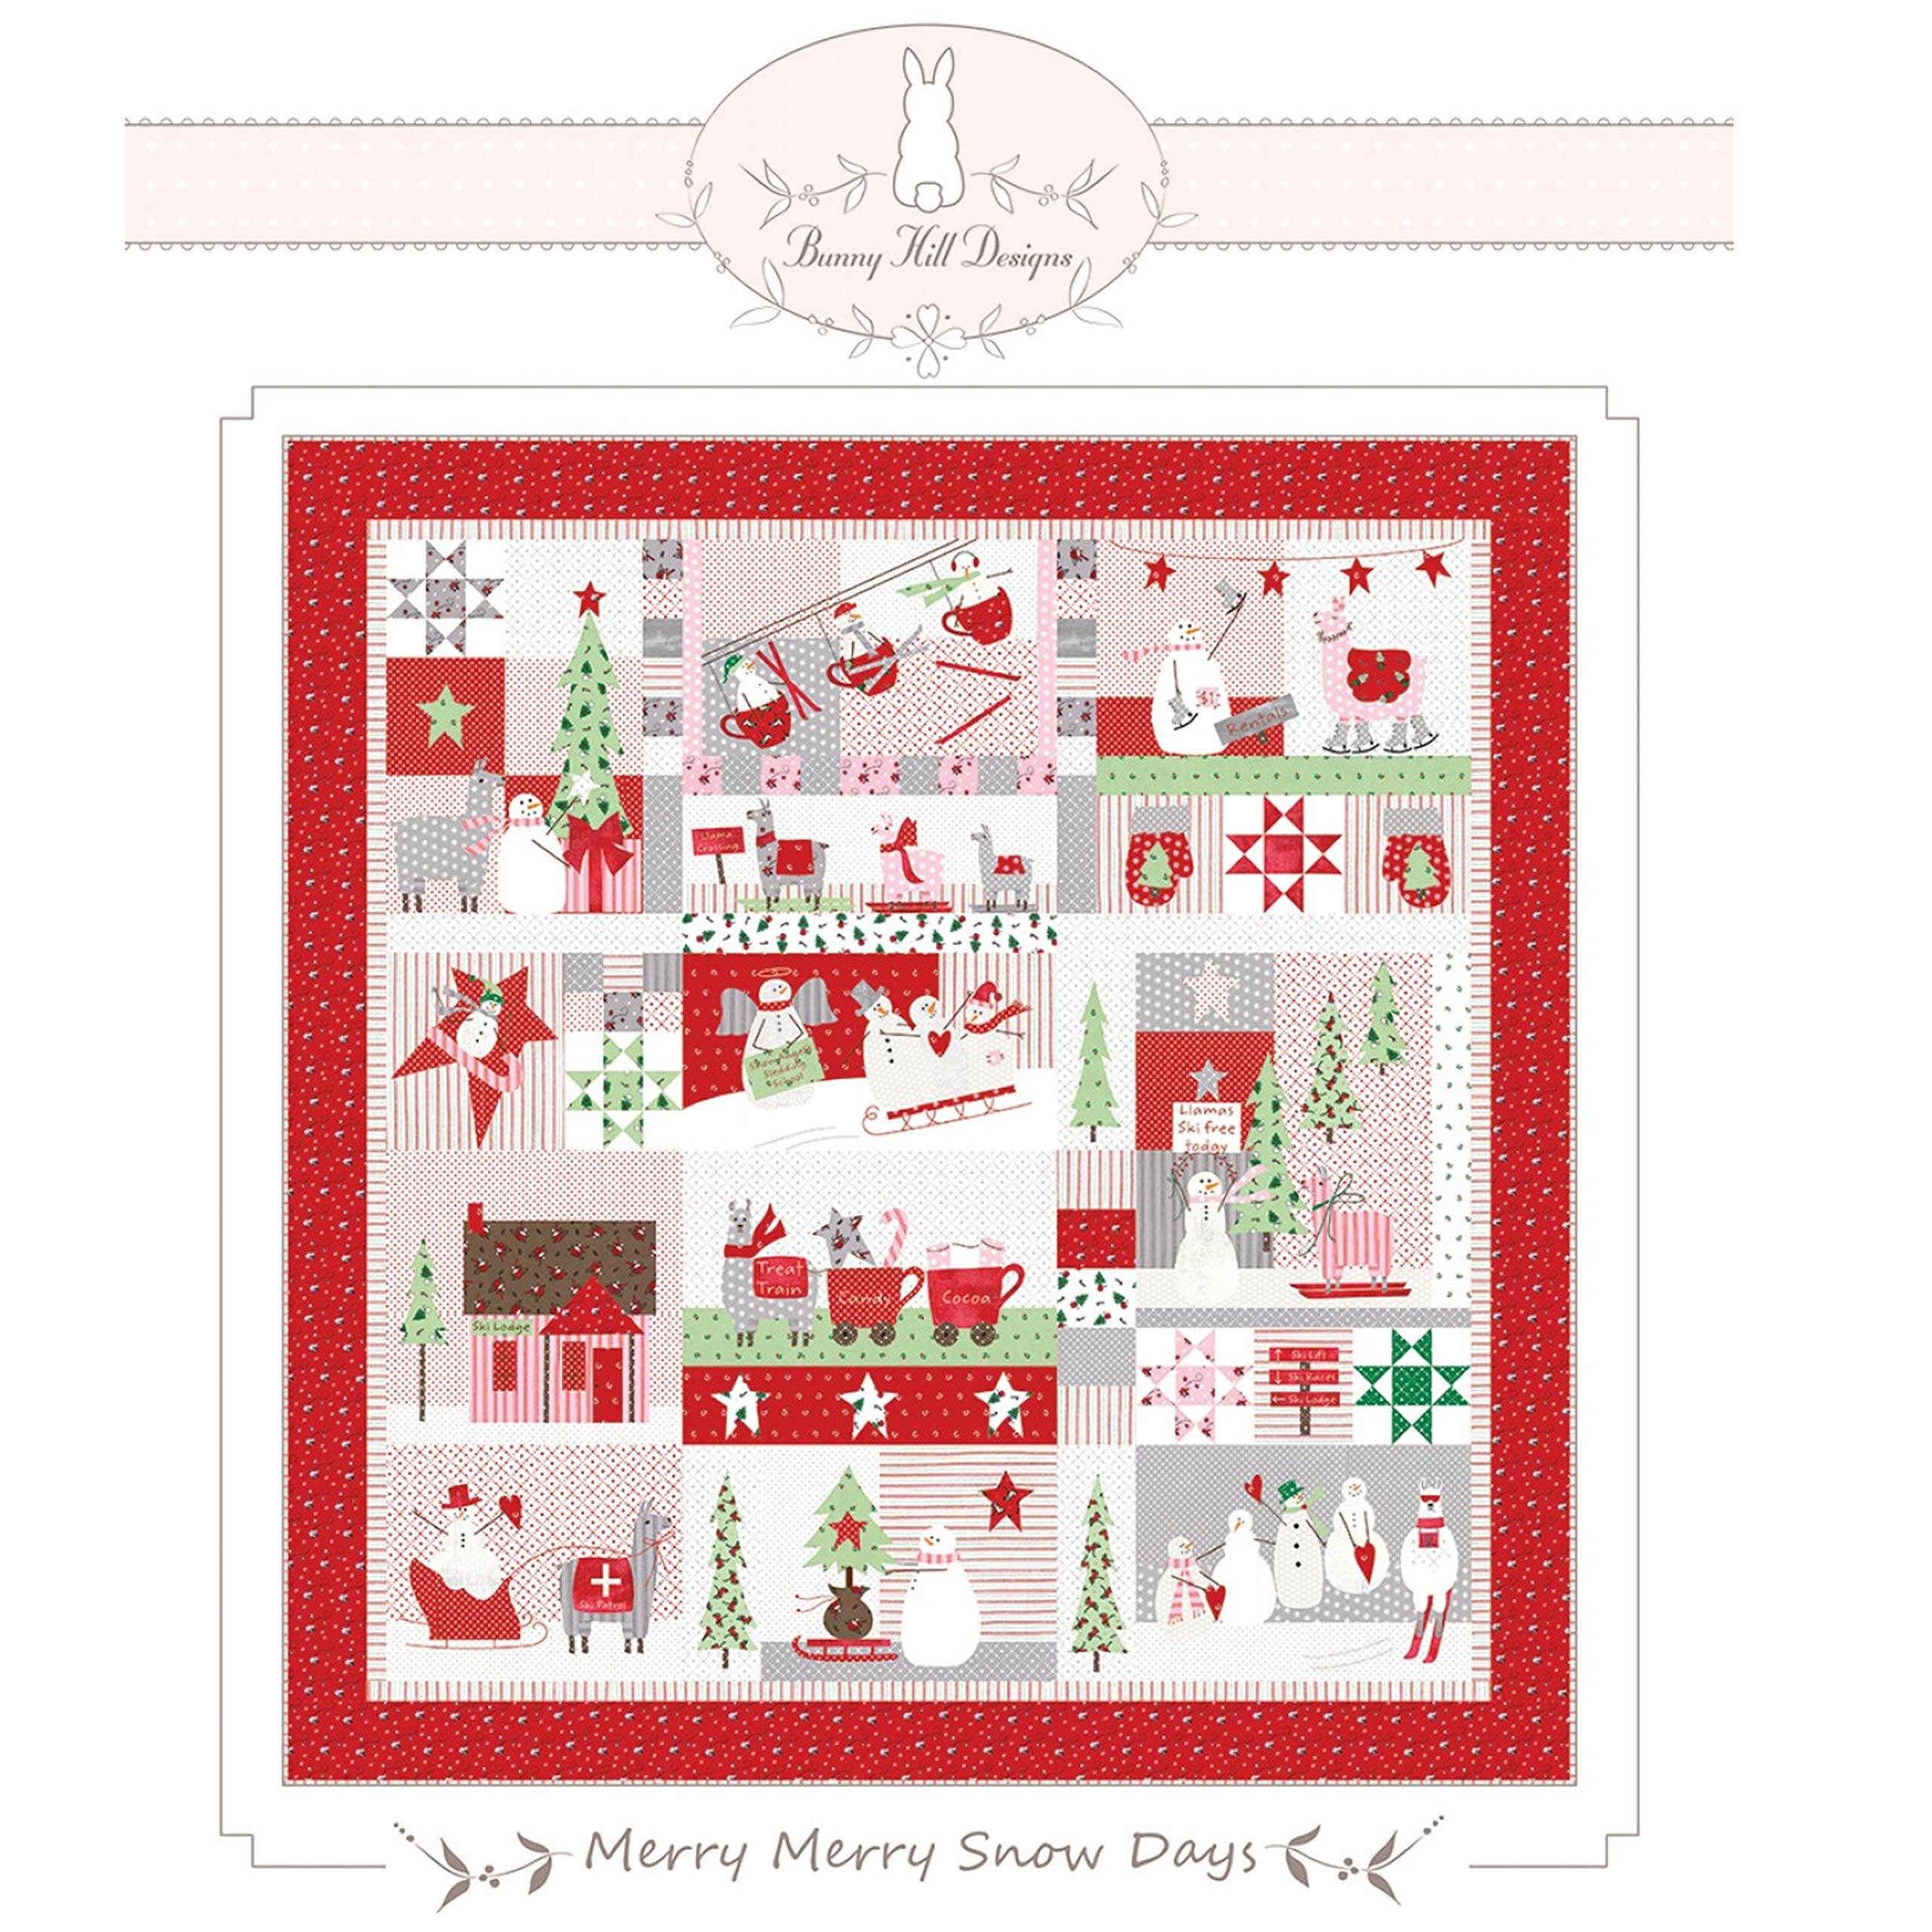 Merry Merry Snow Days Quilt Pattern by Bunny Hill Designs by Bunny Hill Designs